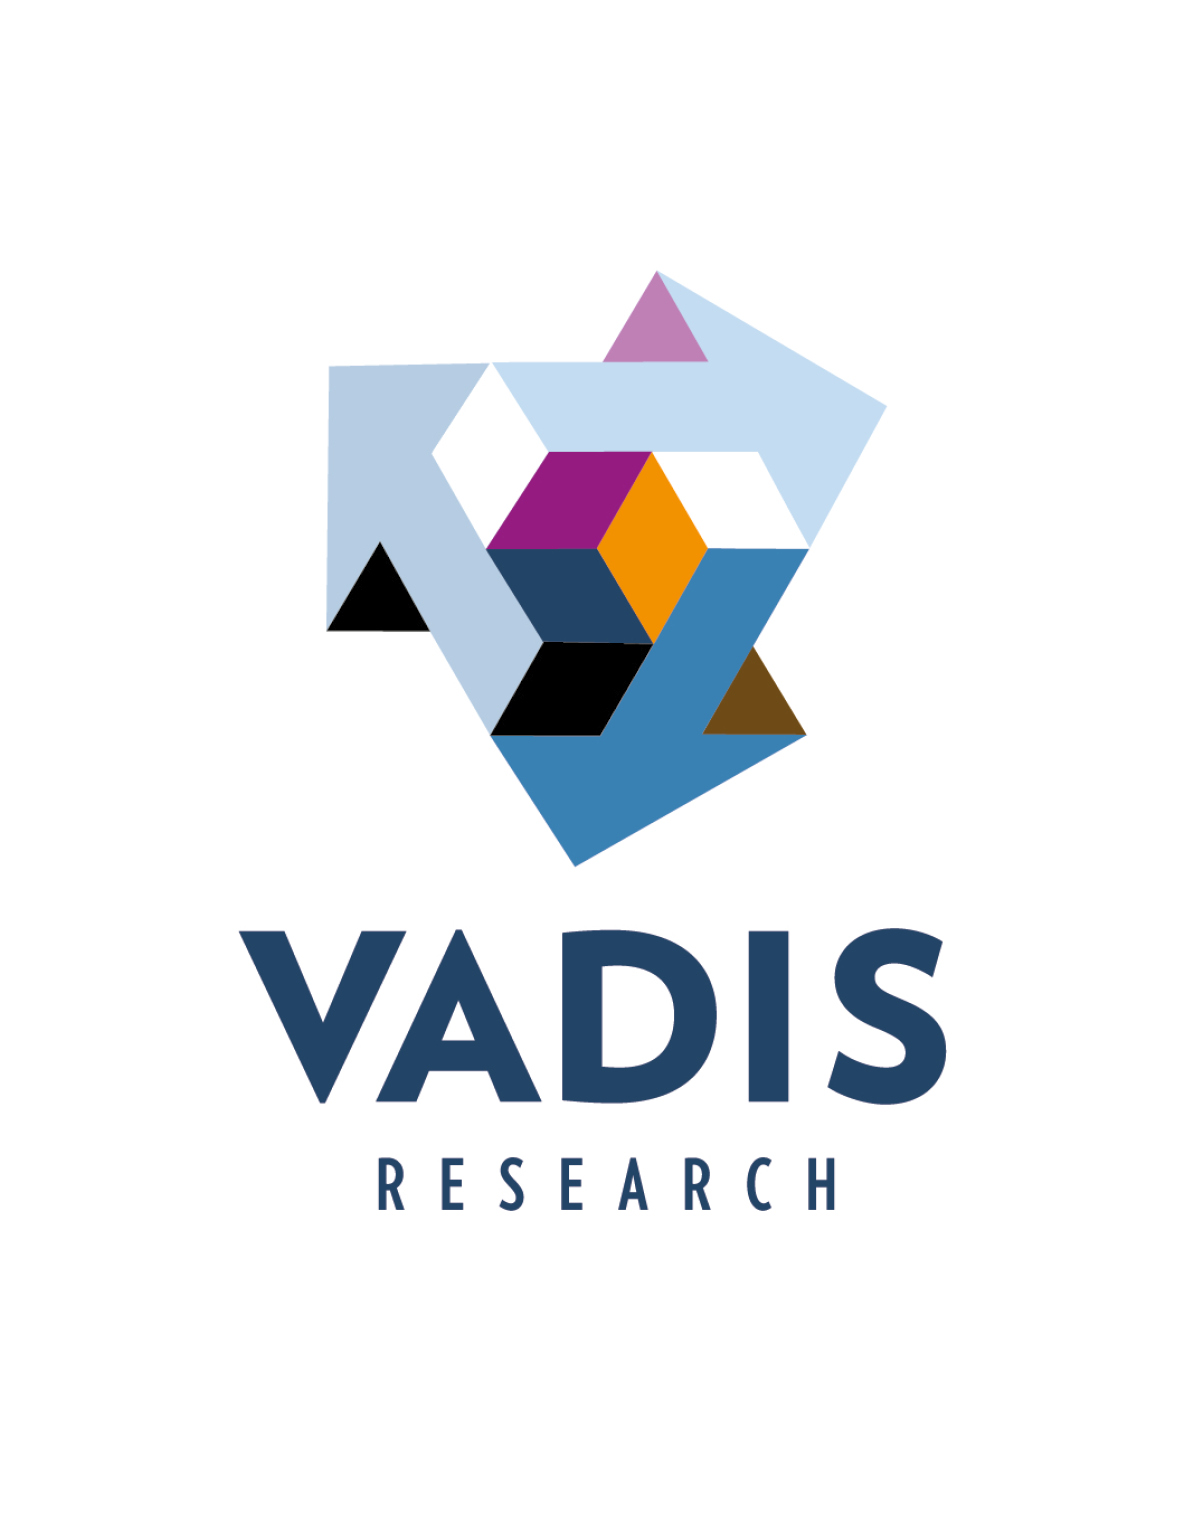 VADIS Research - logo